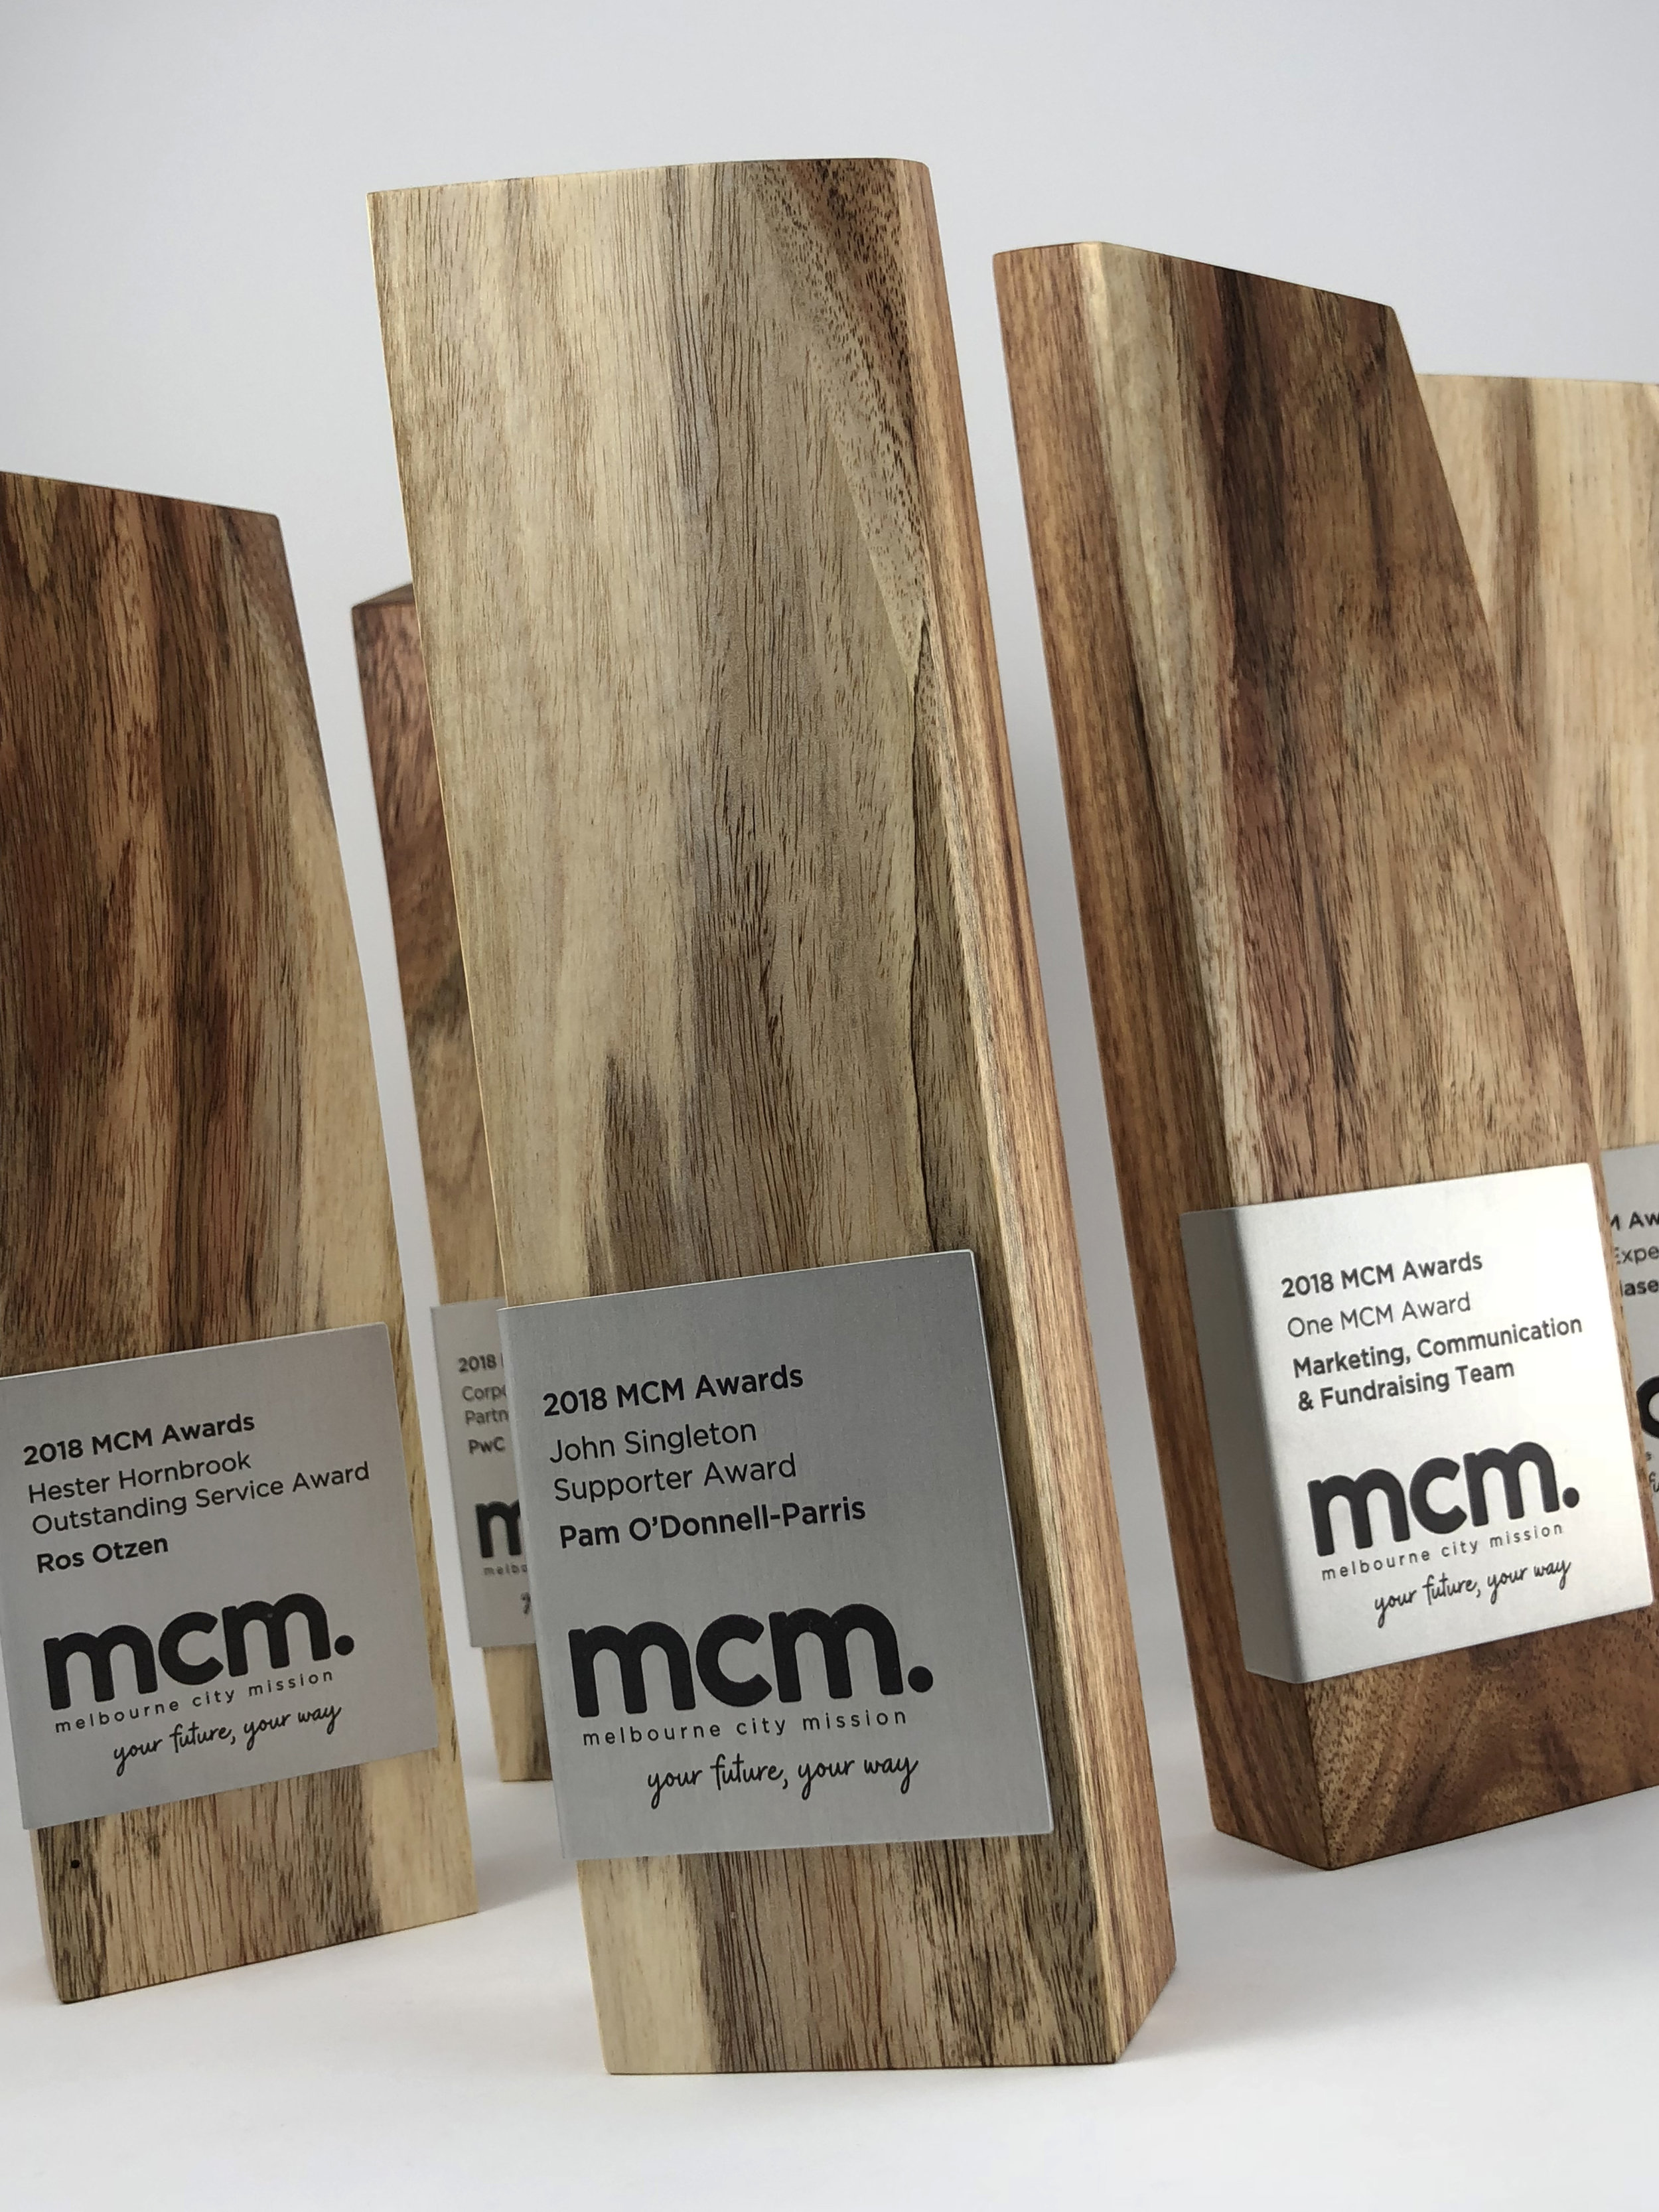 mcm-awards-reclaimed-eco-timber-chamfer-metal-trophy-04.jpg